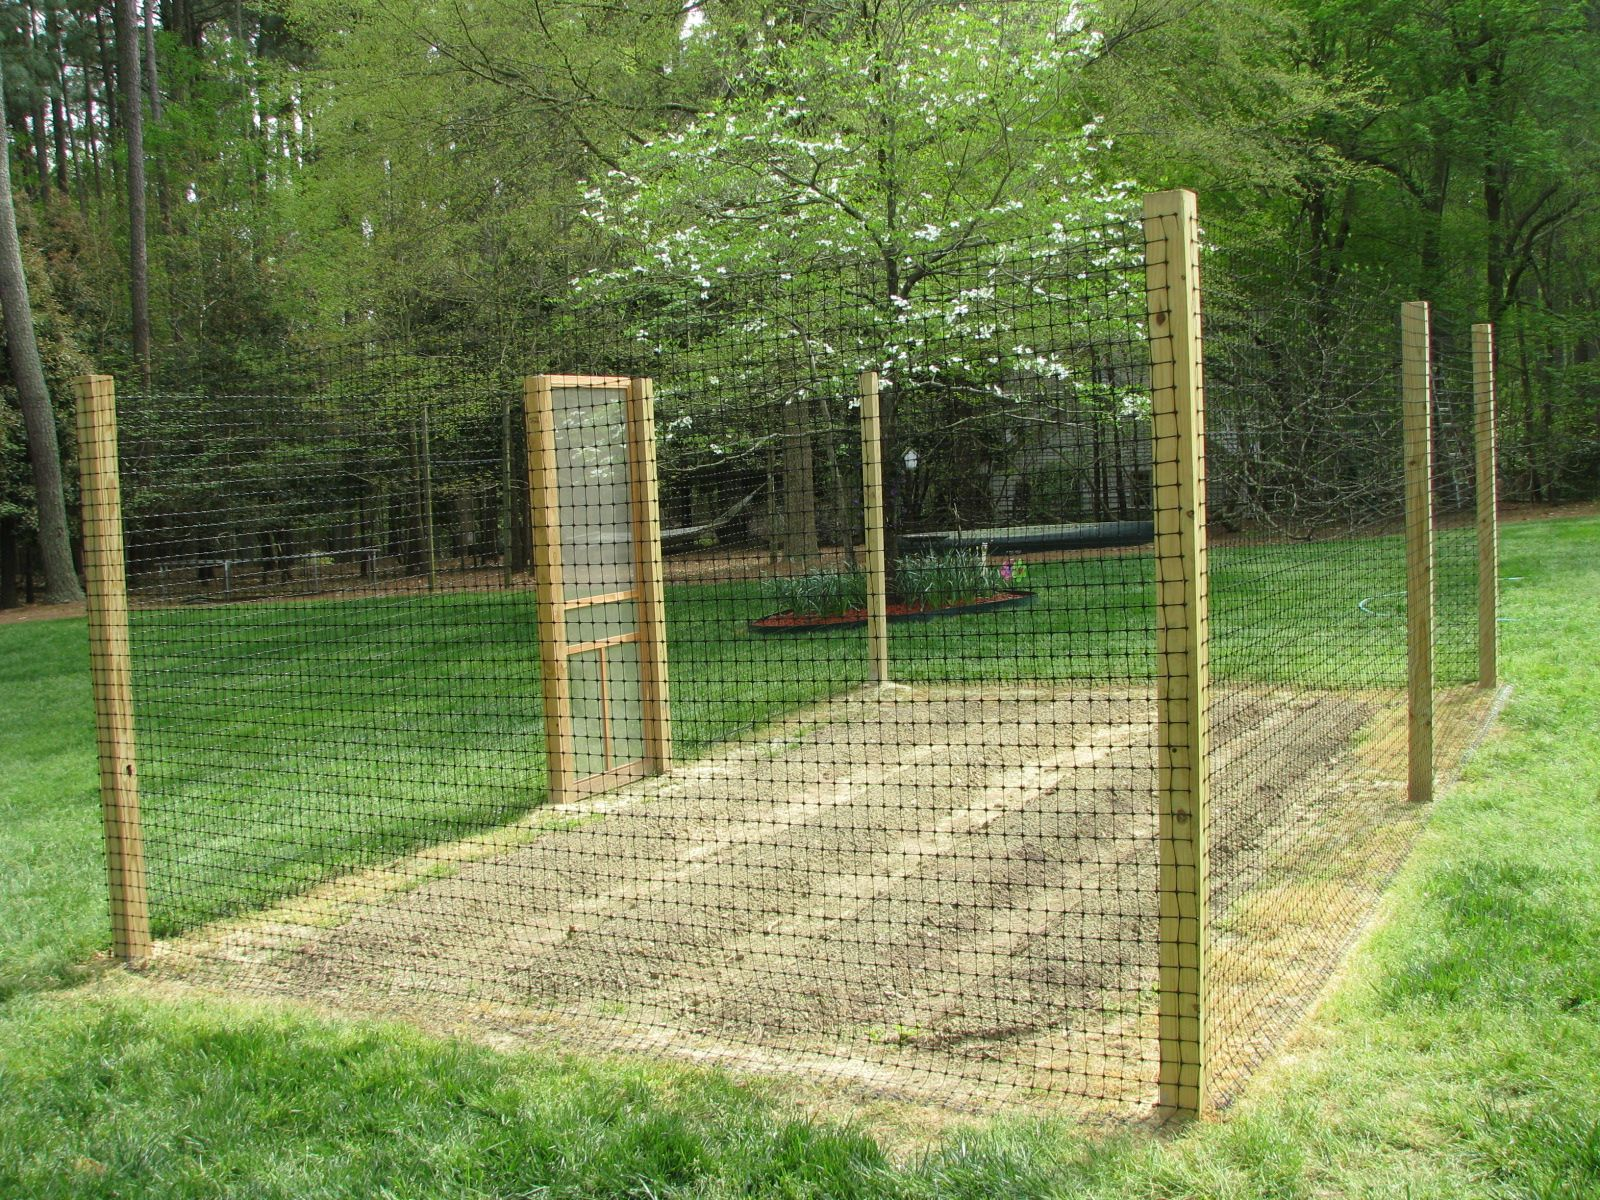 Delightful Deer Proof Garden Fence | Some Nice Photos From Chris In Raleigh NC    Thanks Chris